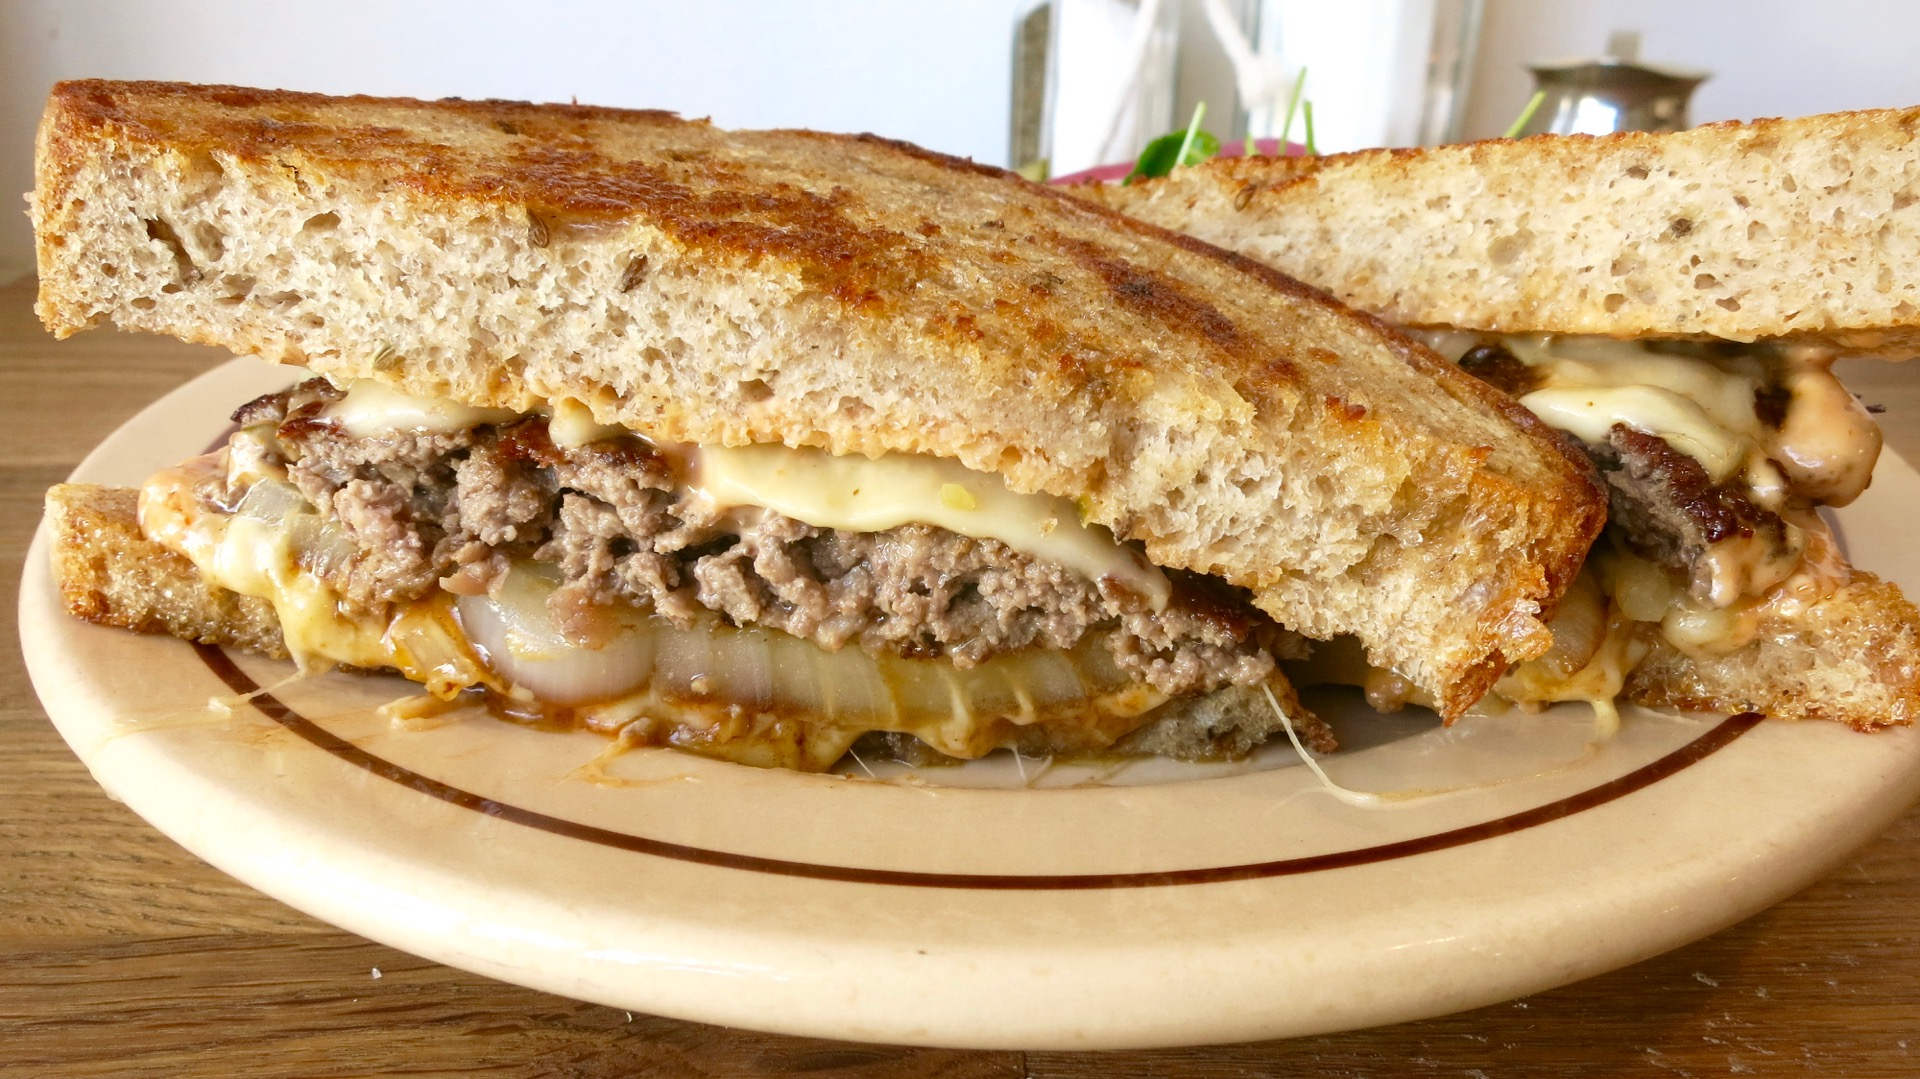 Sequoia Diner's stellar patty melt is above and beyond what you'd find at a regular diner.